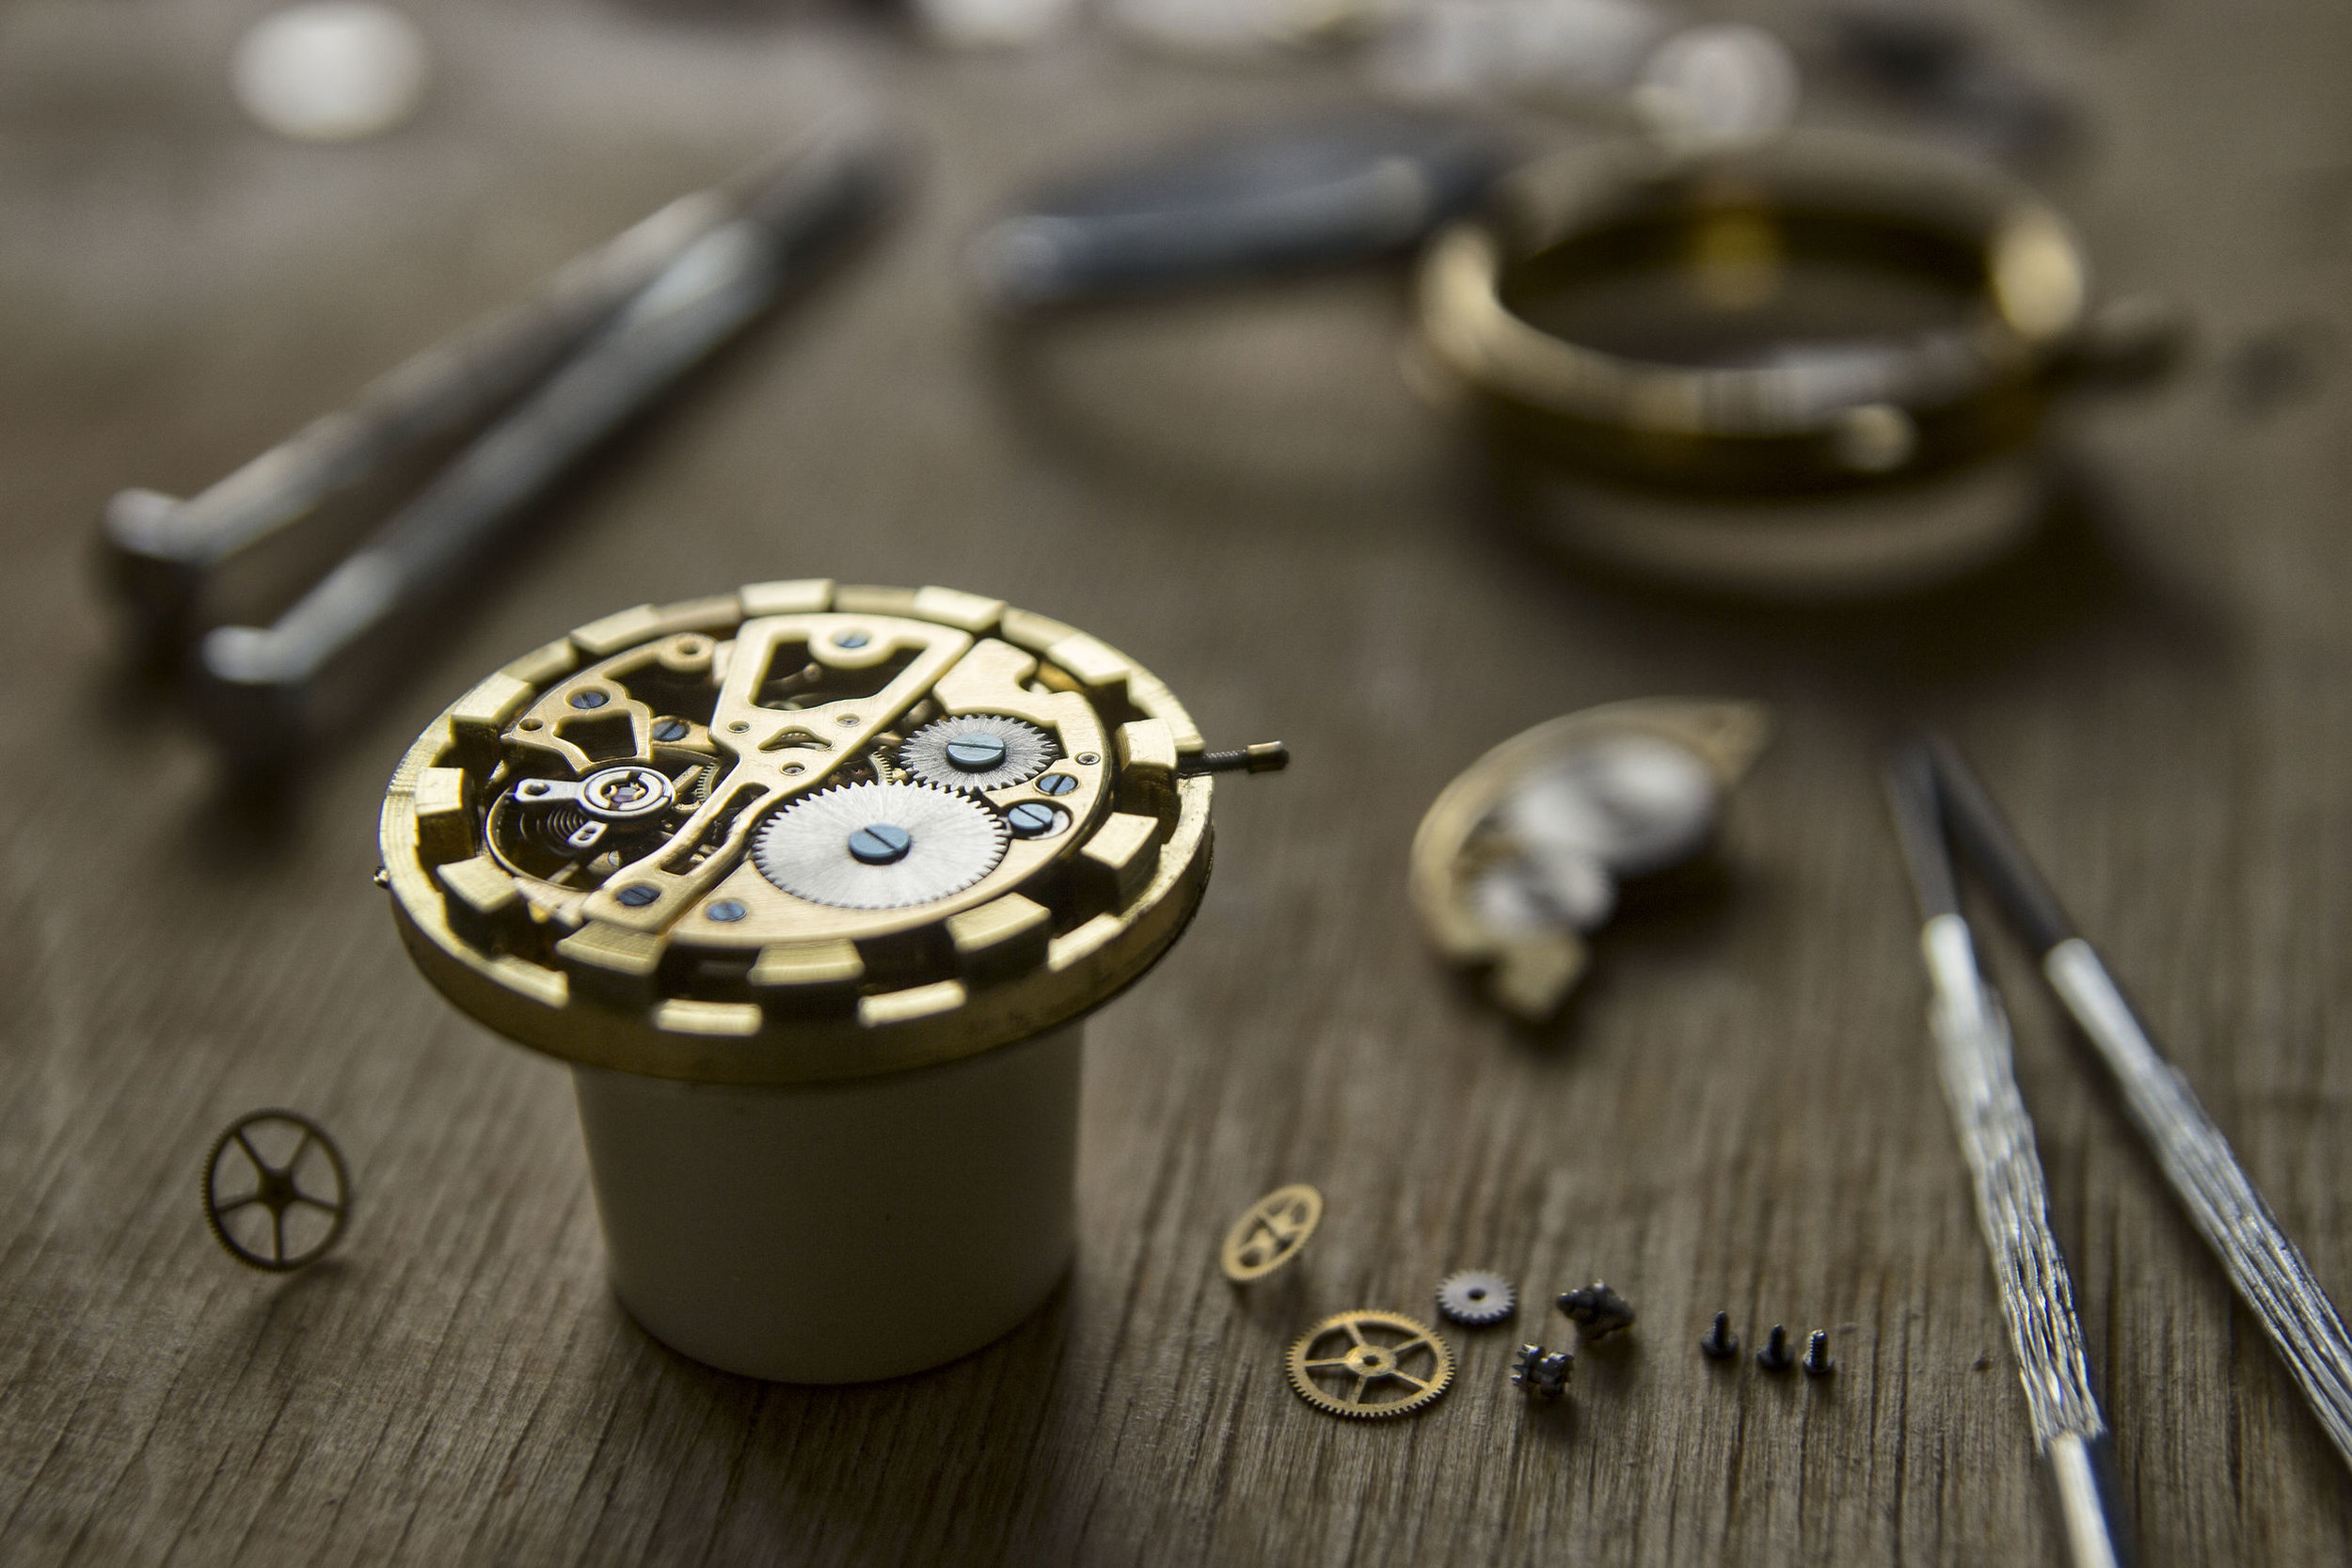 Deconstructed watch, gears, and timepiece.